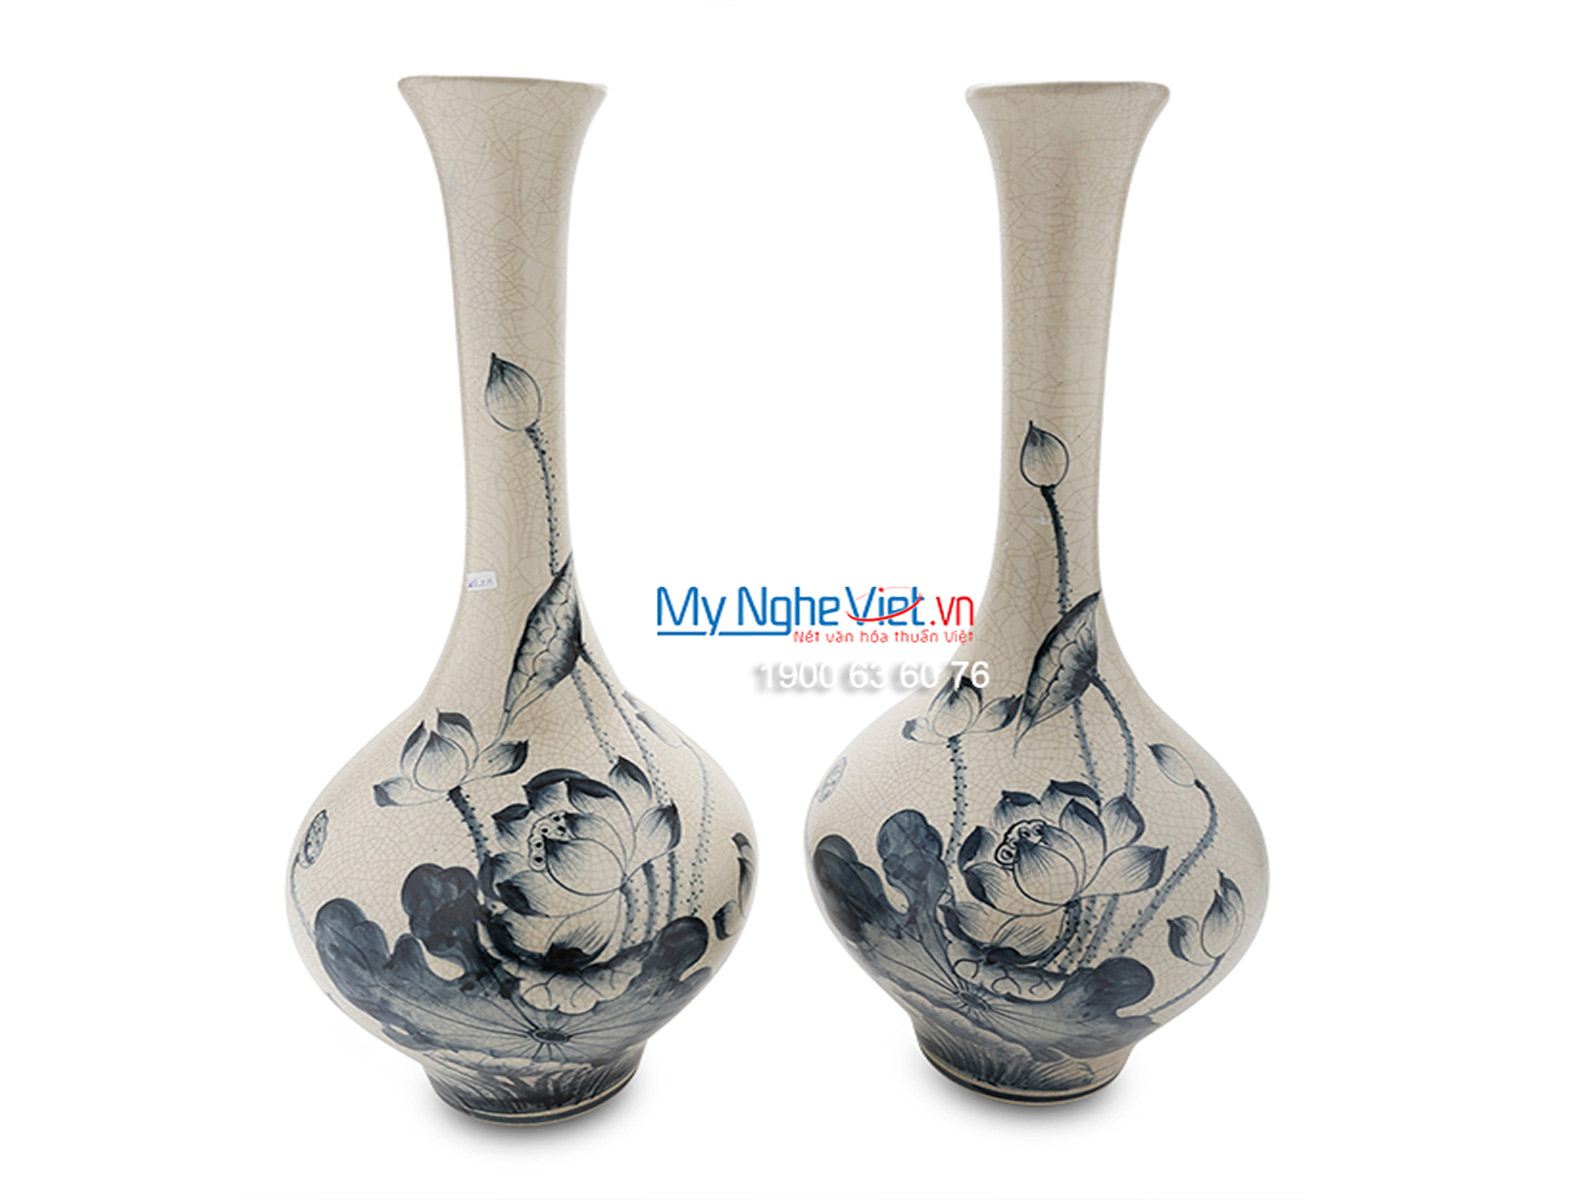 Vase with High Neck and Lotus Flower Pattern MNV_LHC39